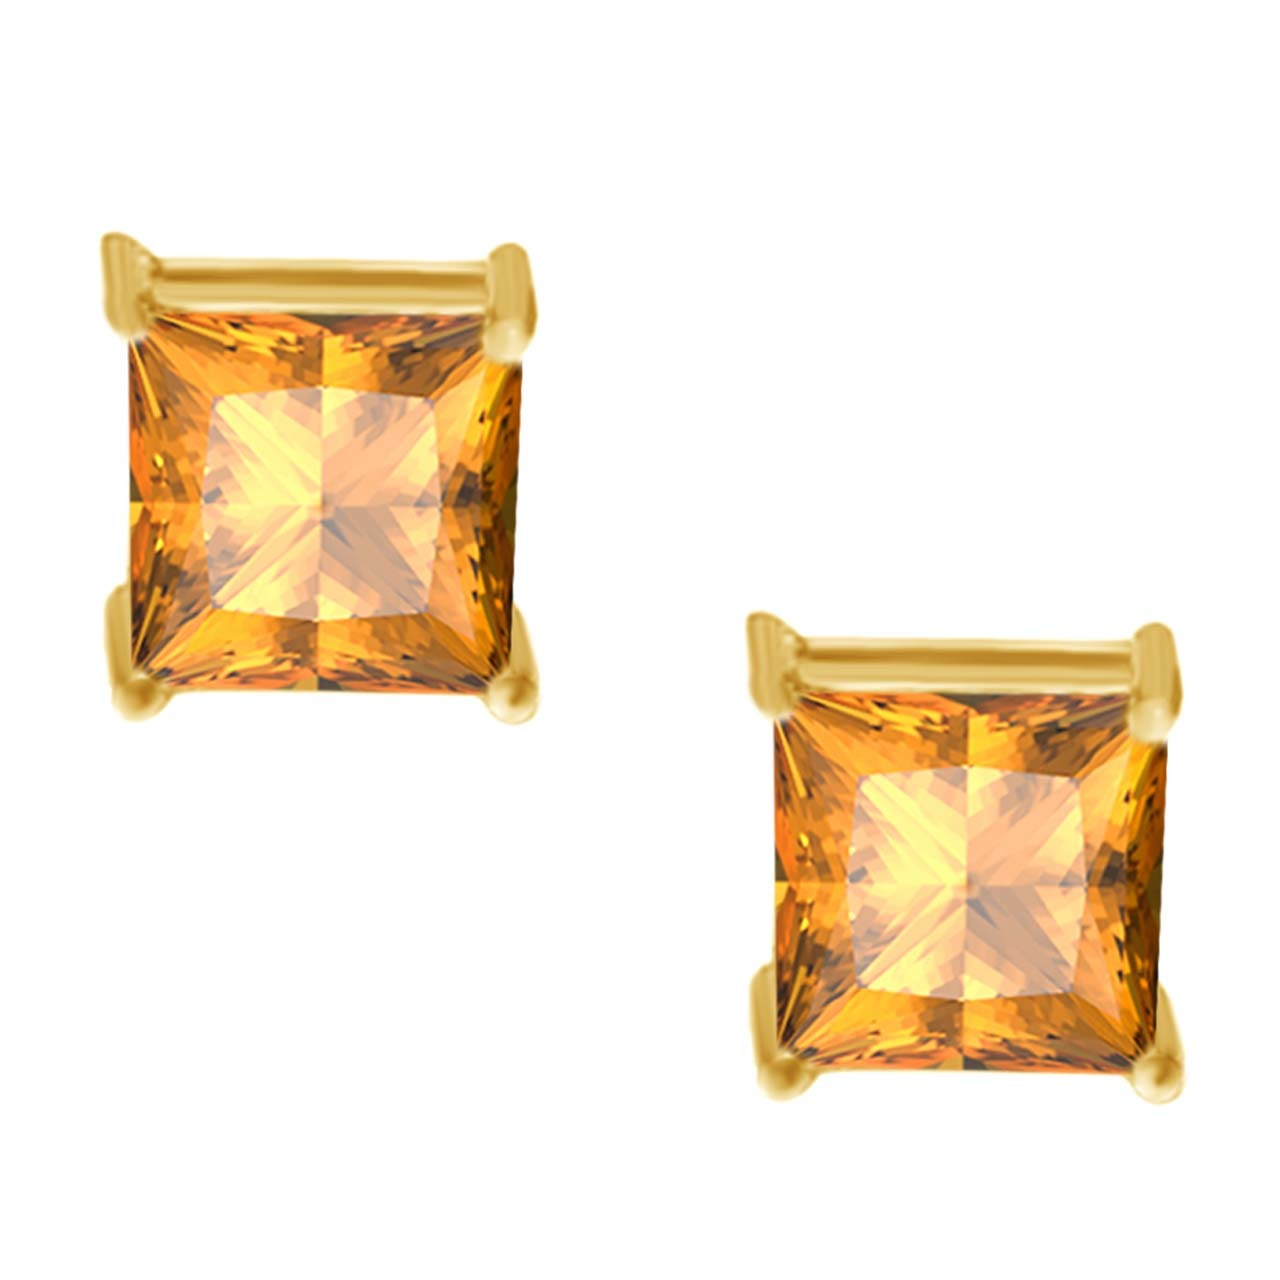 0.50 CT Canary Square Princess Cut 14k Yellow Gold Stud Earrings Screw Back все цены